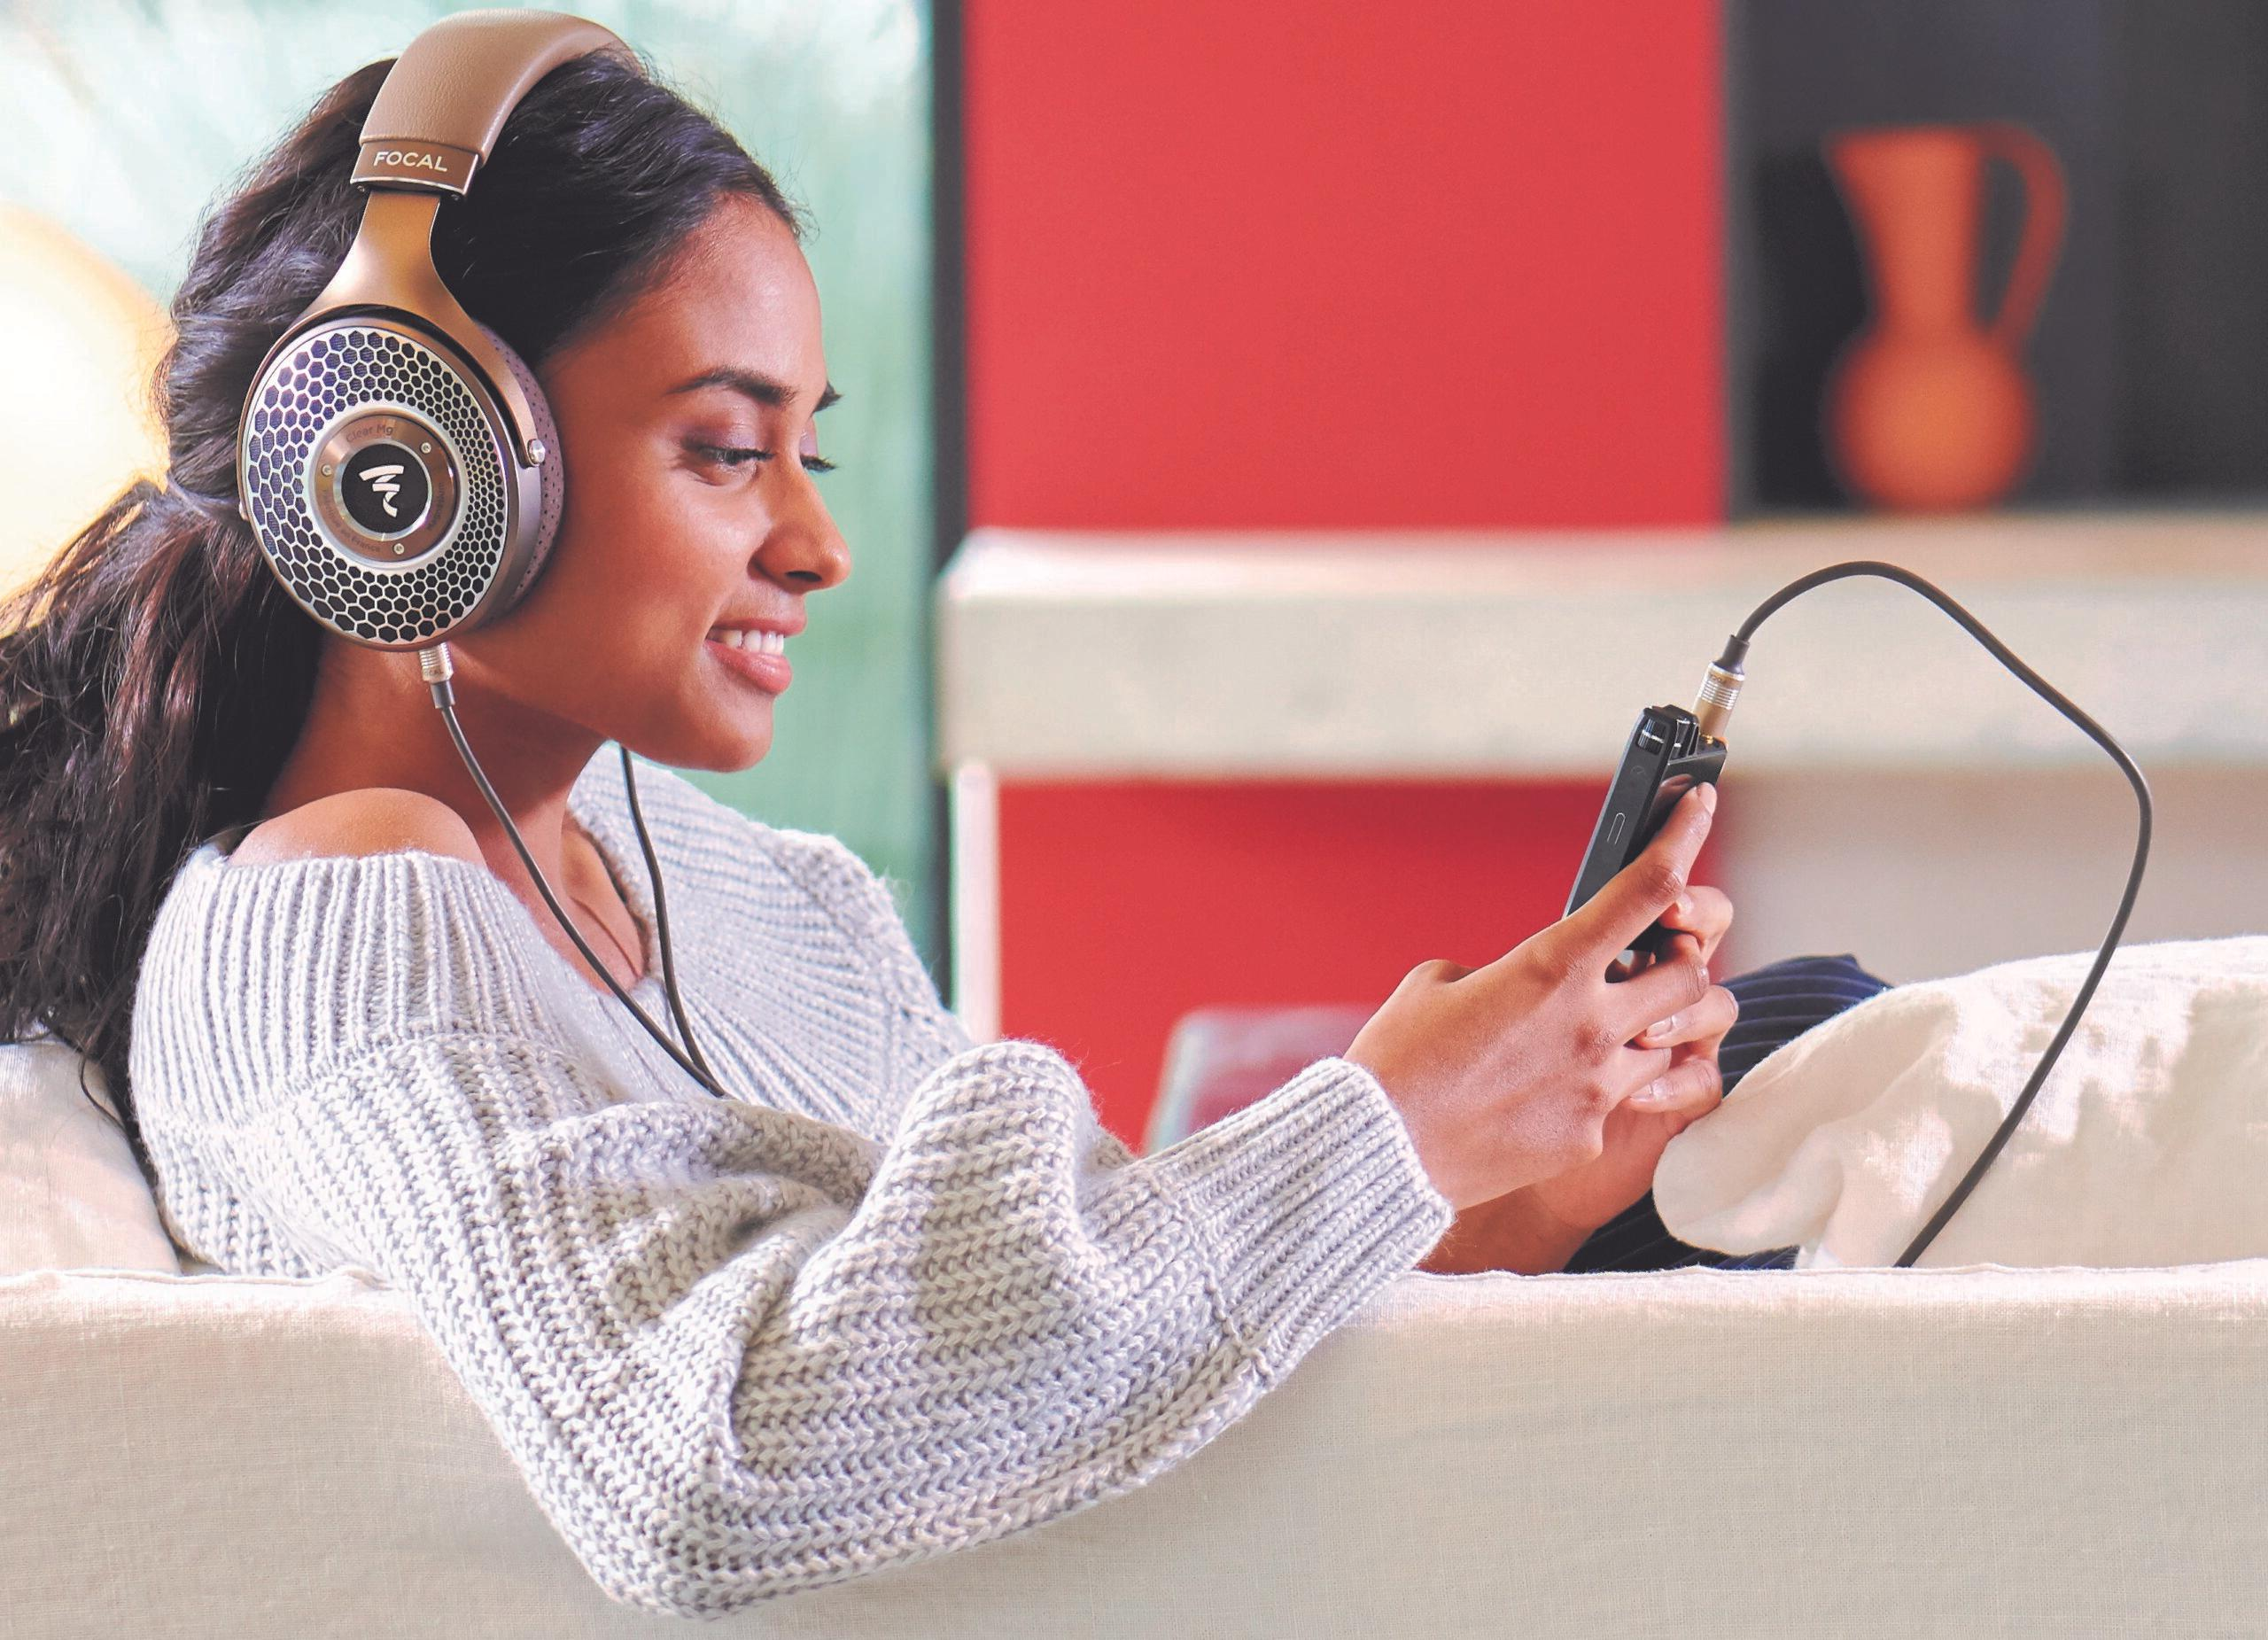 Focal, the French audio brand, says the headphones have a promising new design that will provide an improved, detailed sound.